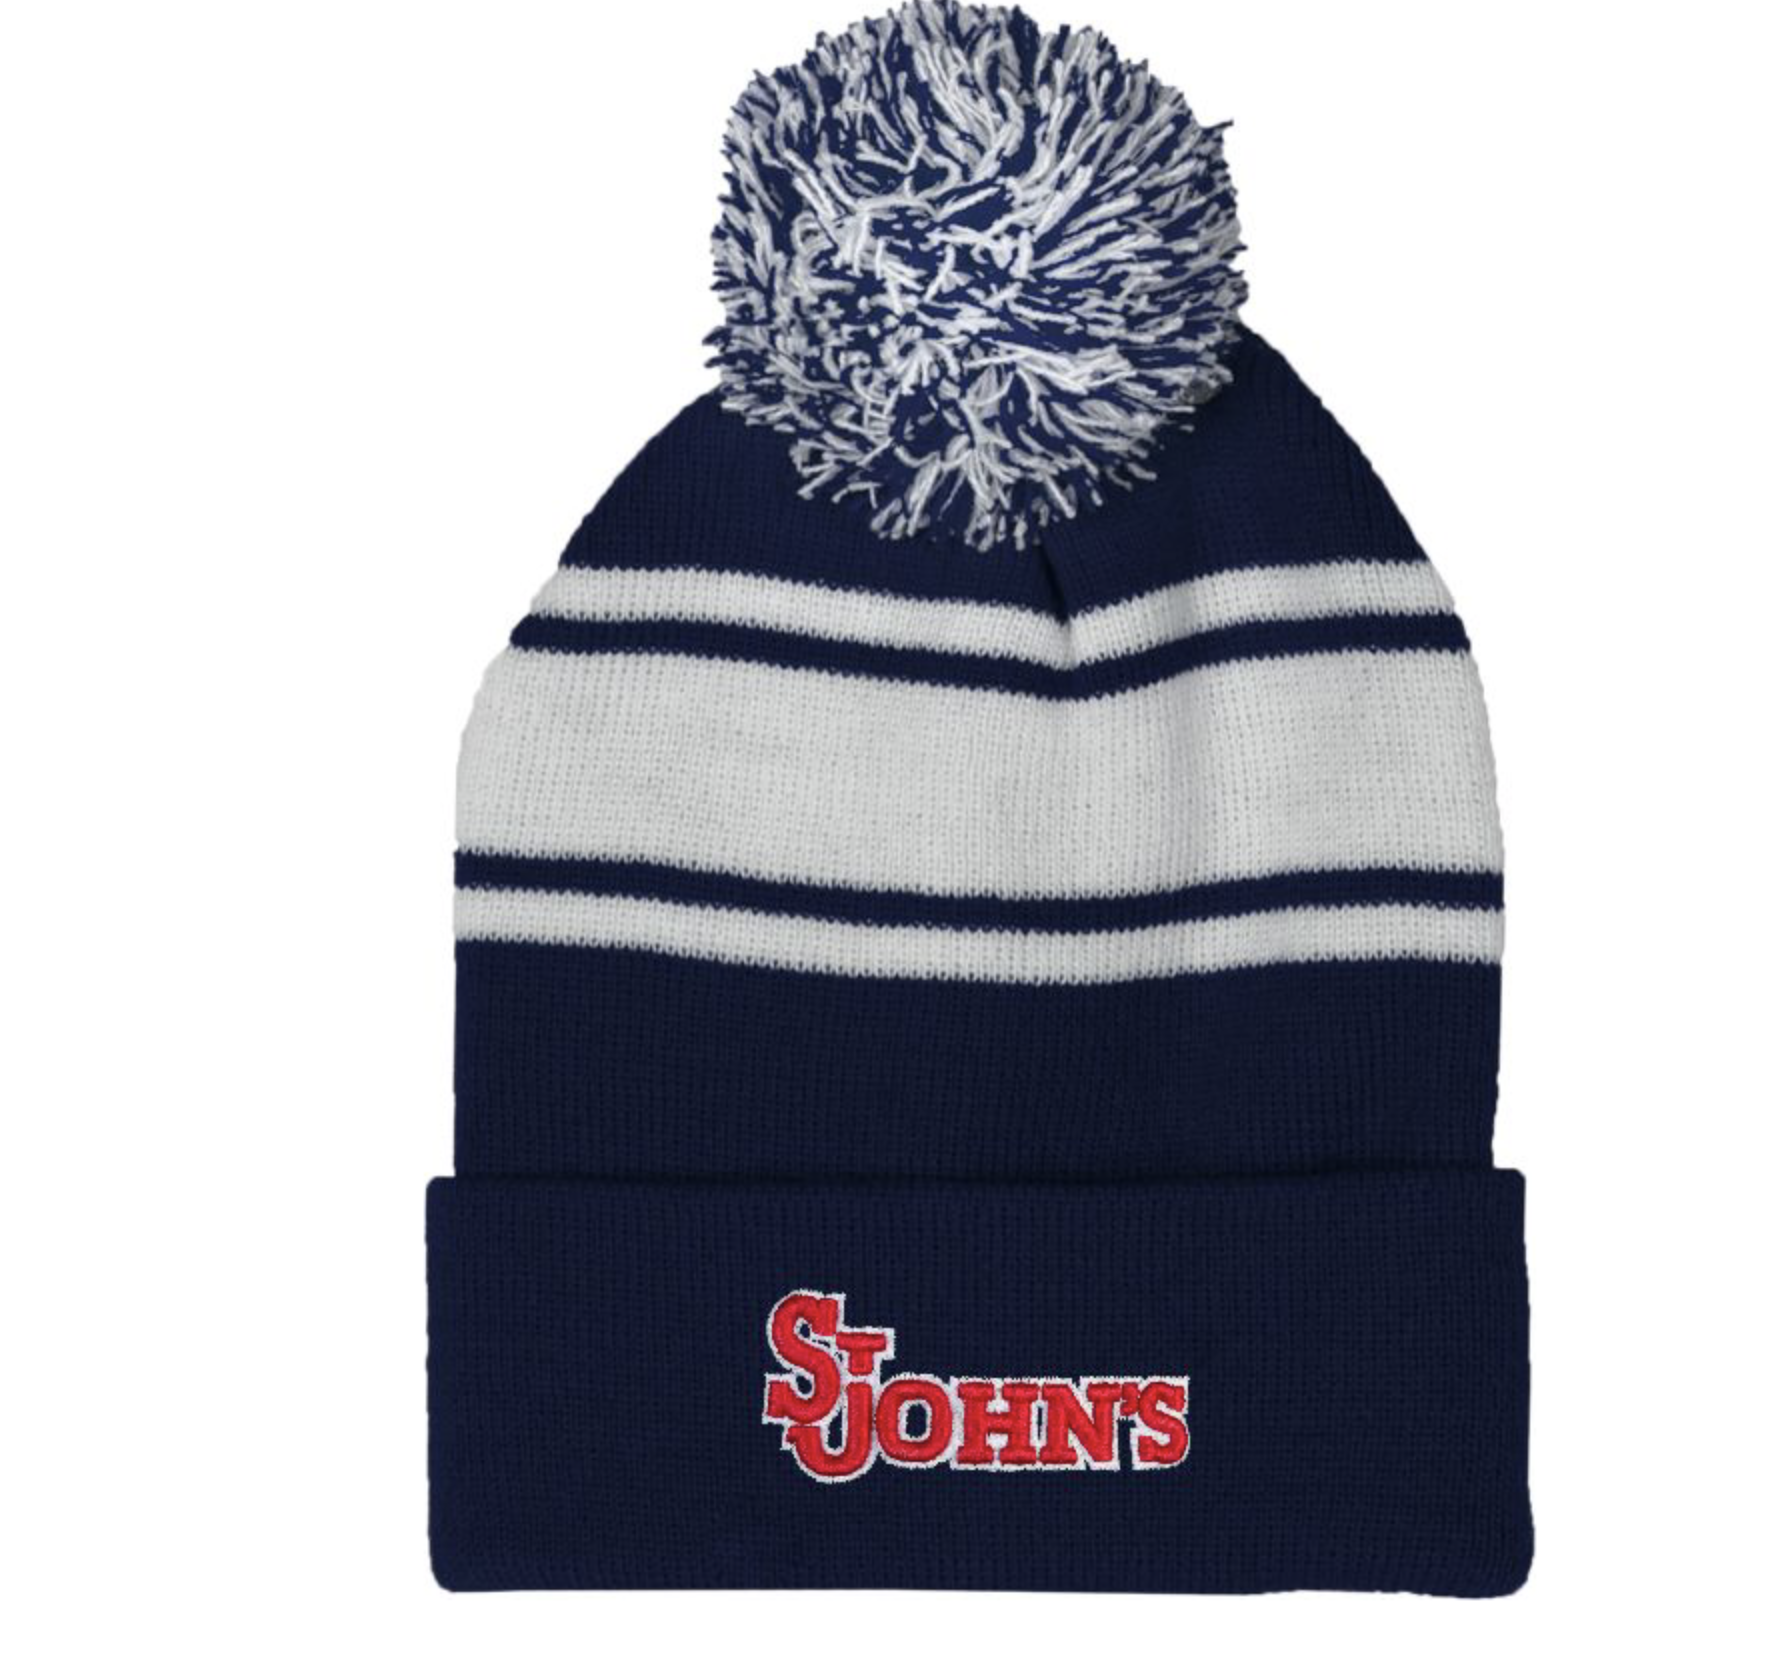 red blue and white winter SJU hat with a pompom